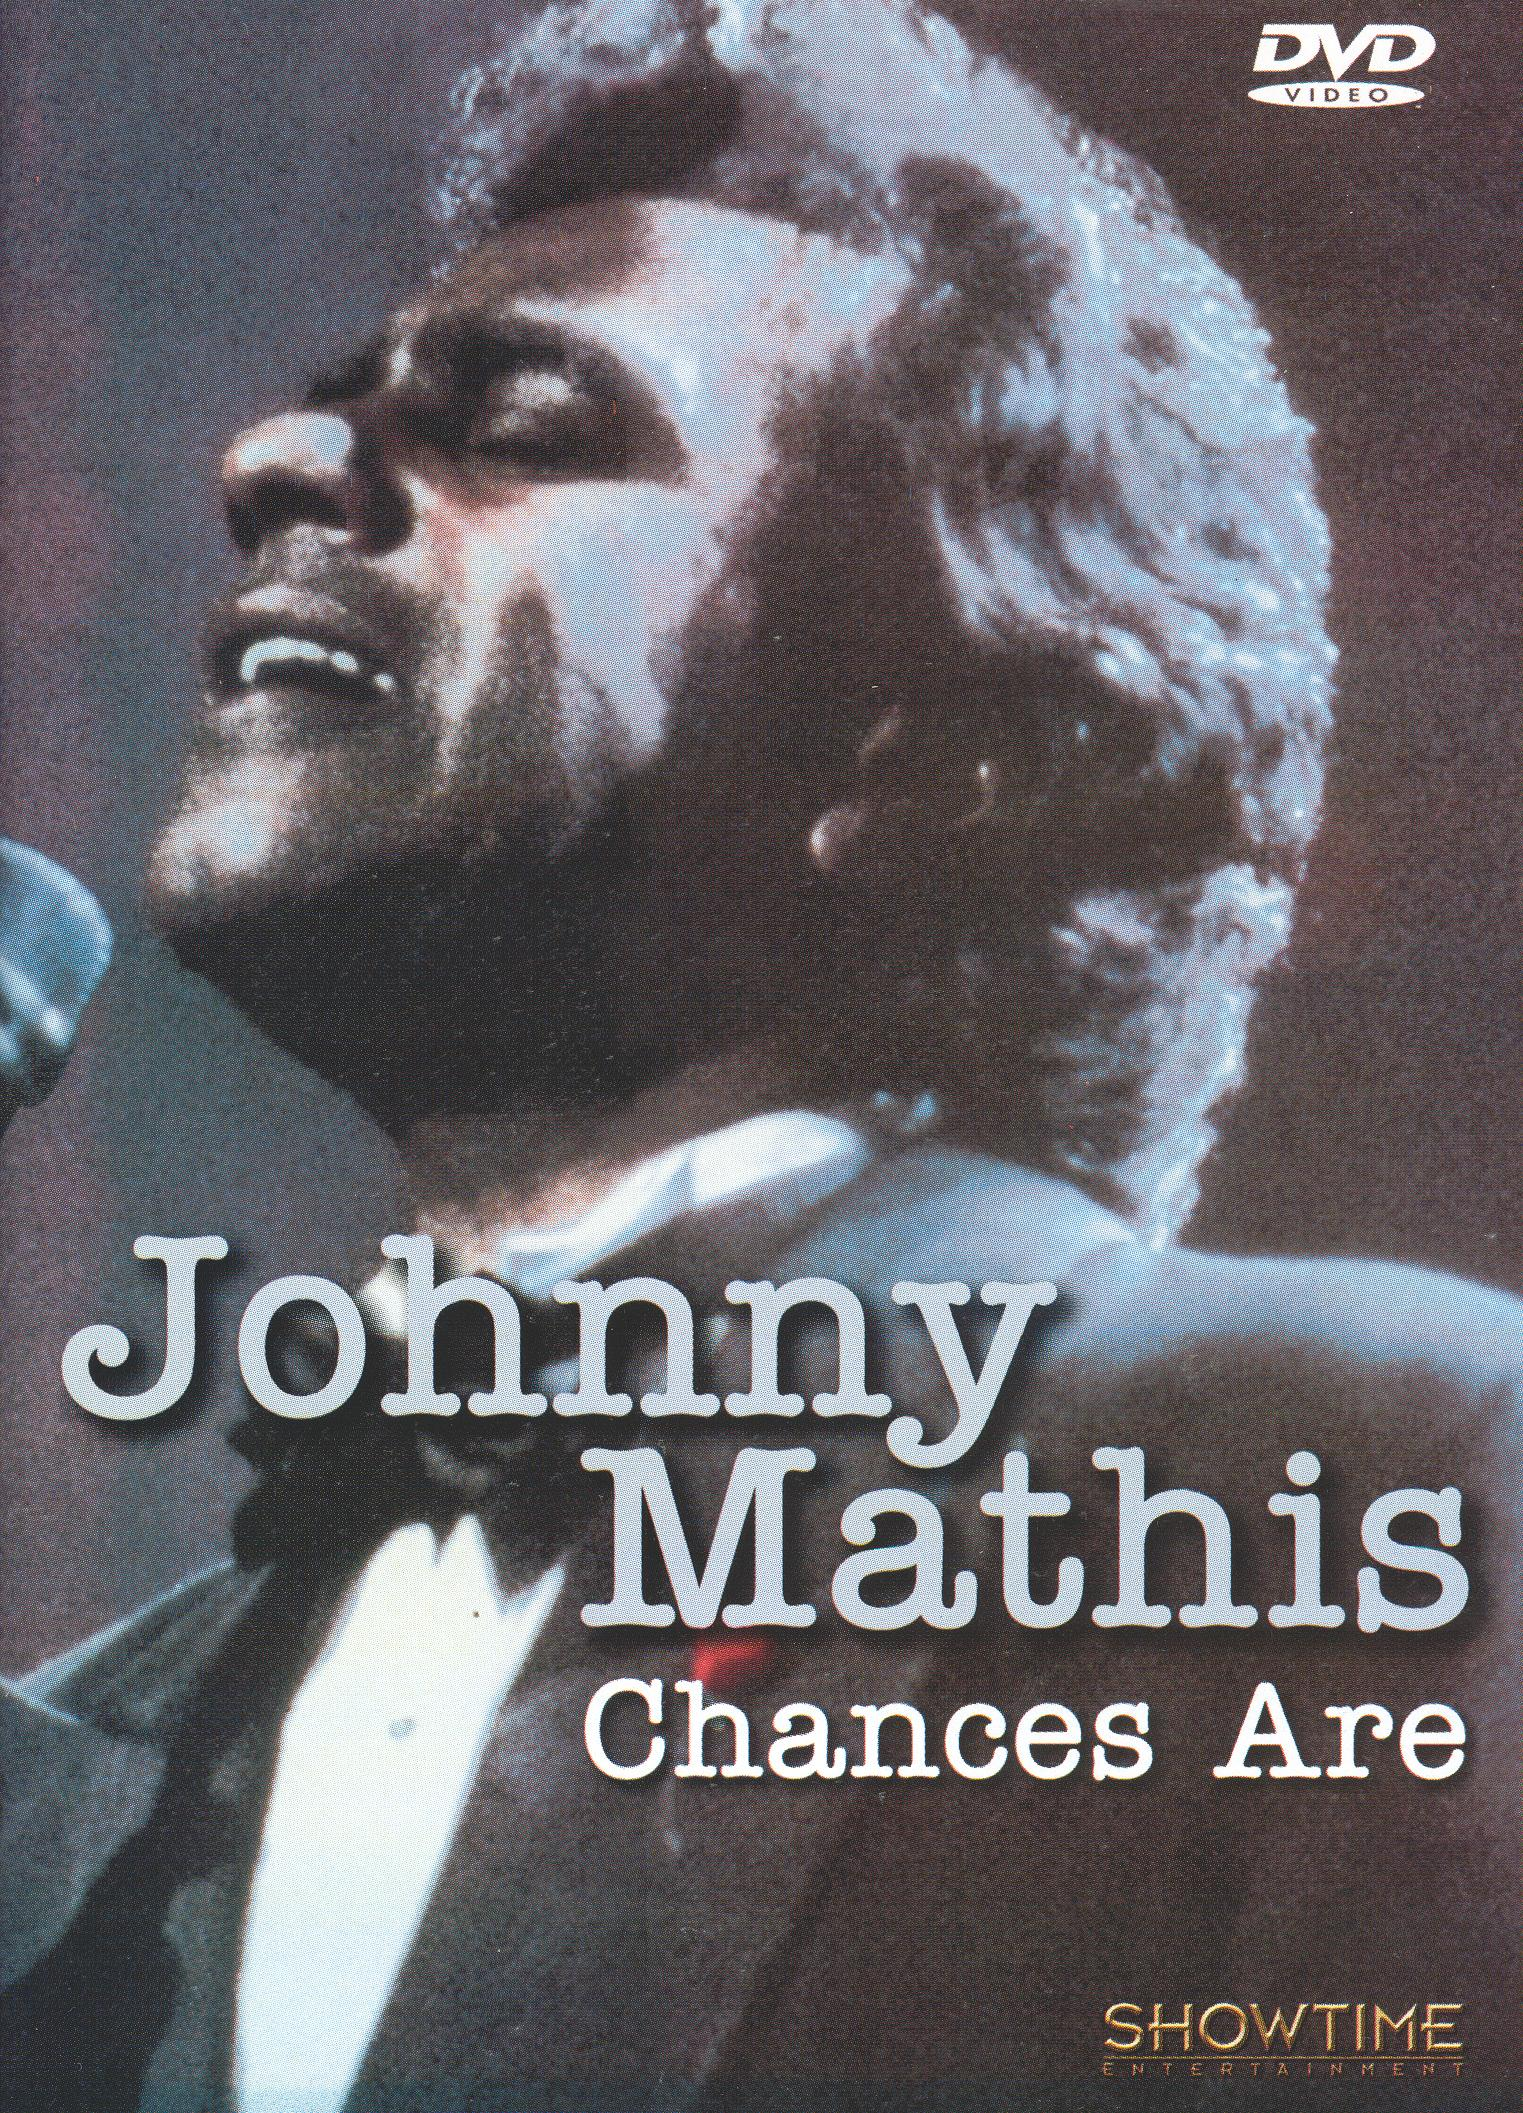 Johnny Mathis: Chances Are